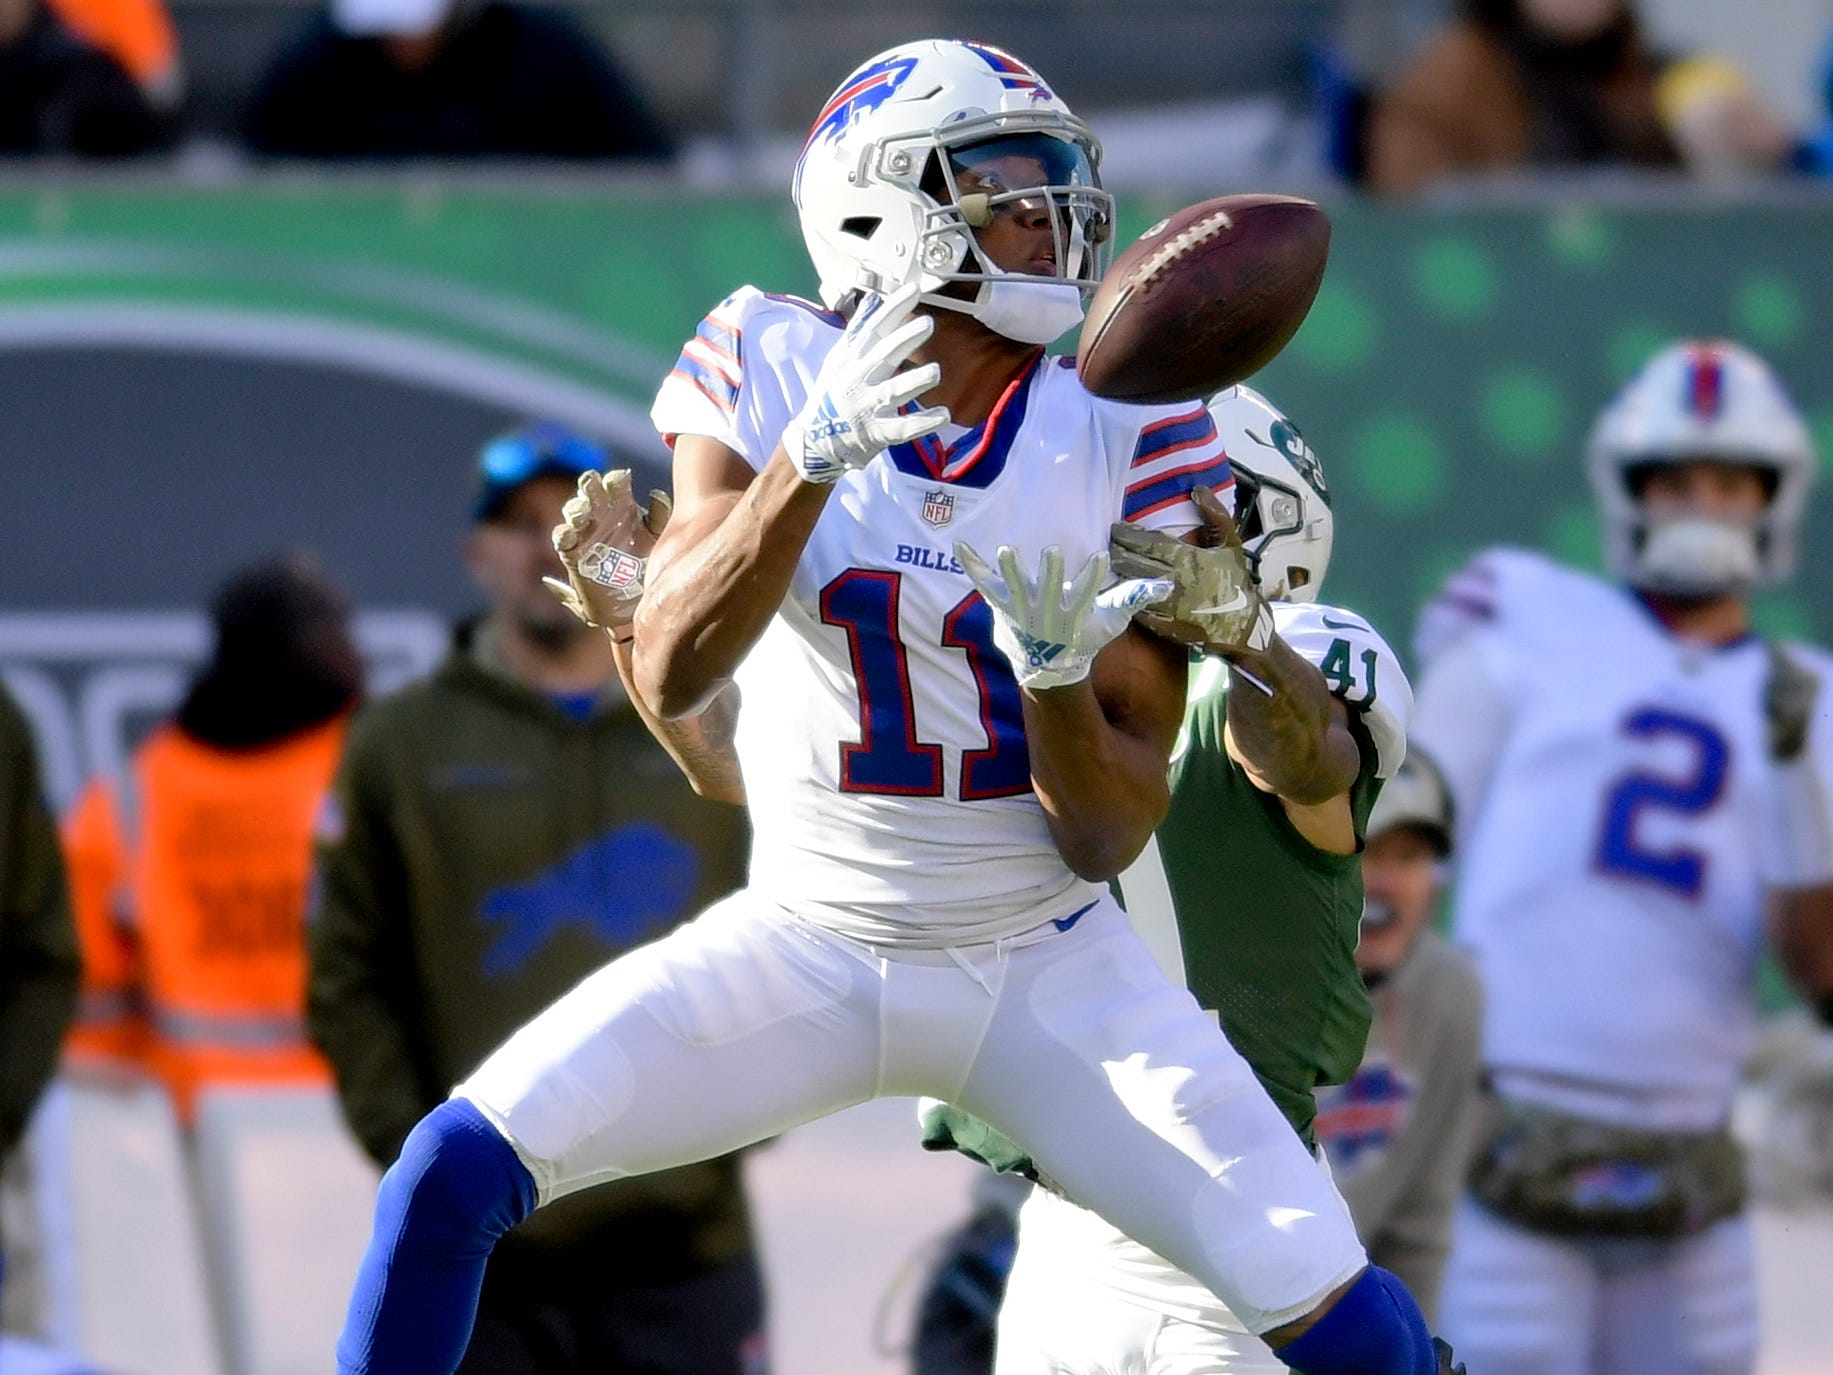 Buffalo Bills wide receiver Zay Jones (11) catches a pass against New York Jets cornerback Buster Skrine (41) during the second quarter of Buffalo's 41-10 win in East Rutherford, N.J. on Sunday.